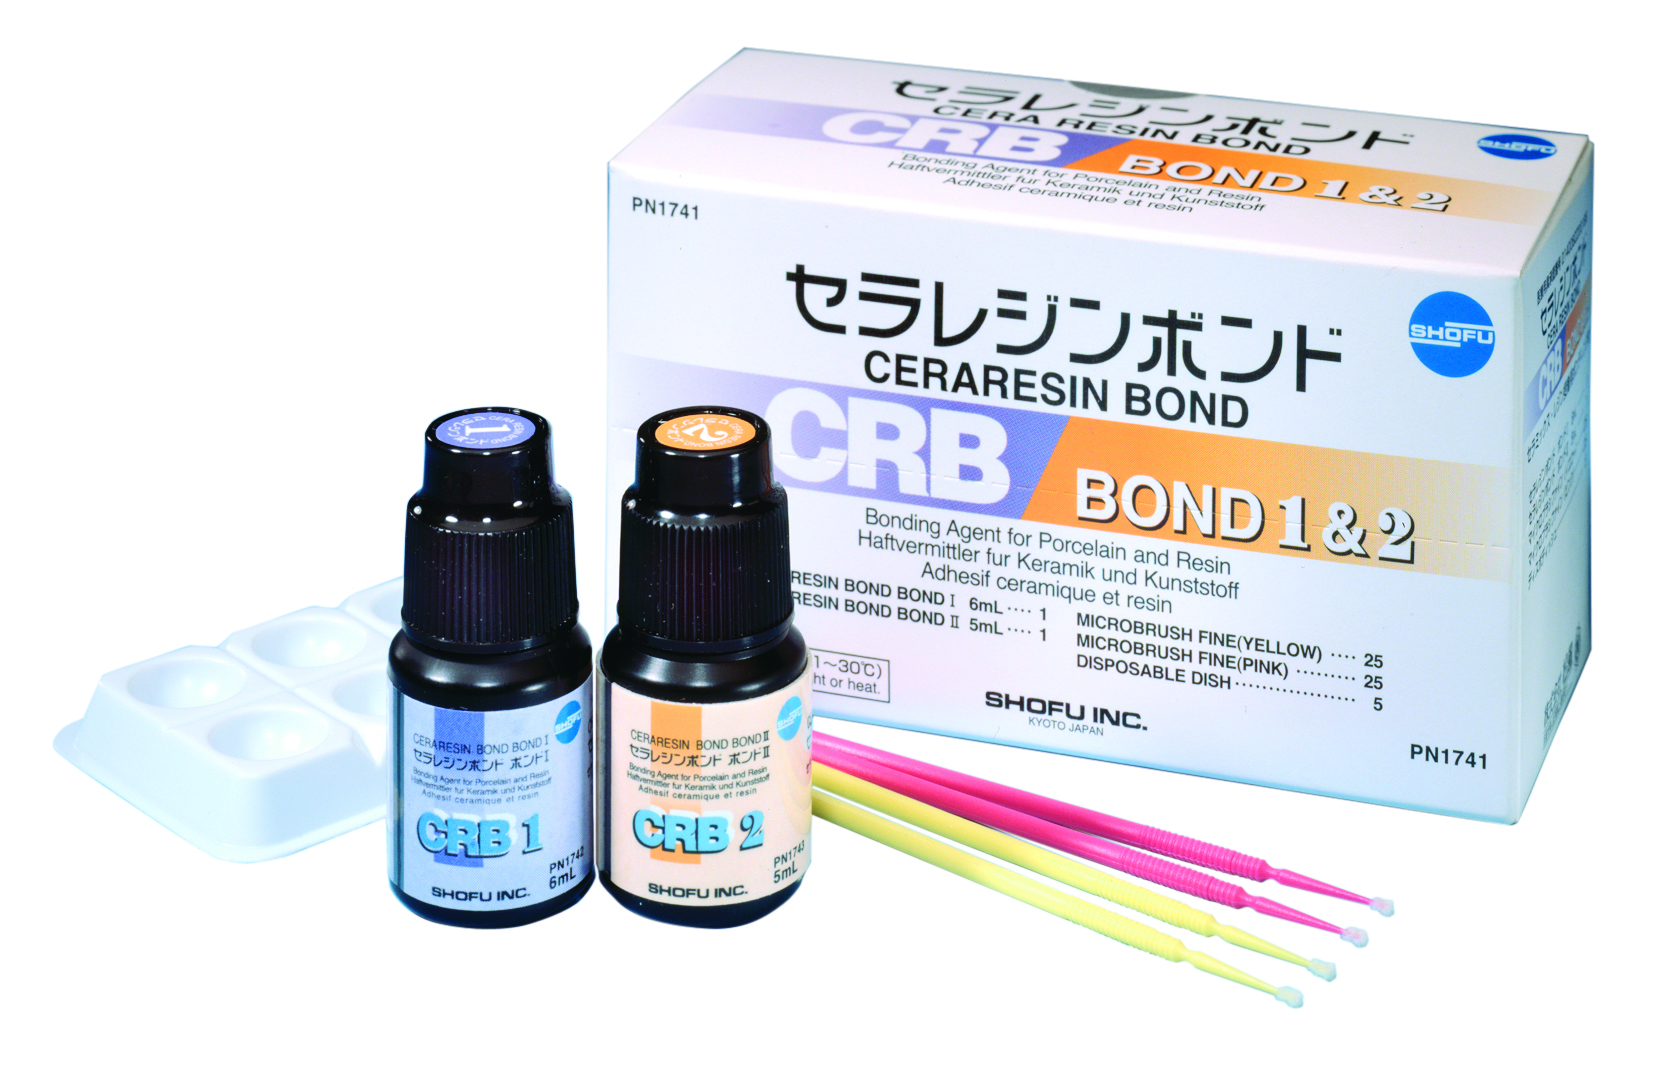 CERARESIN BOND